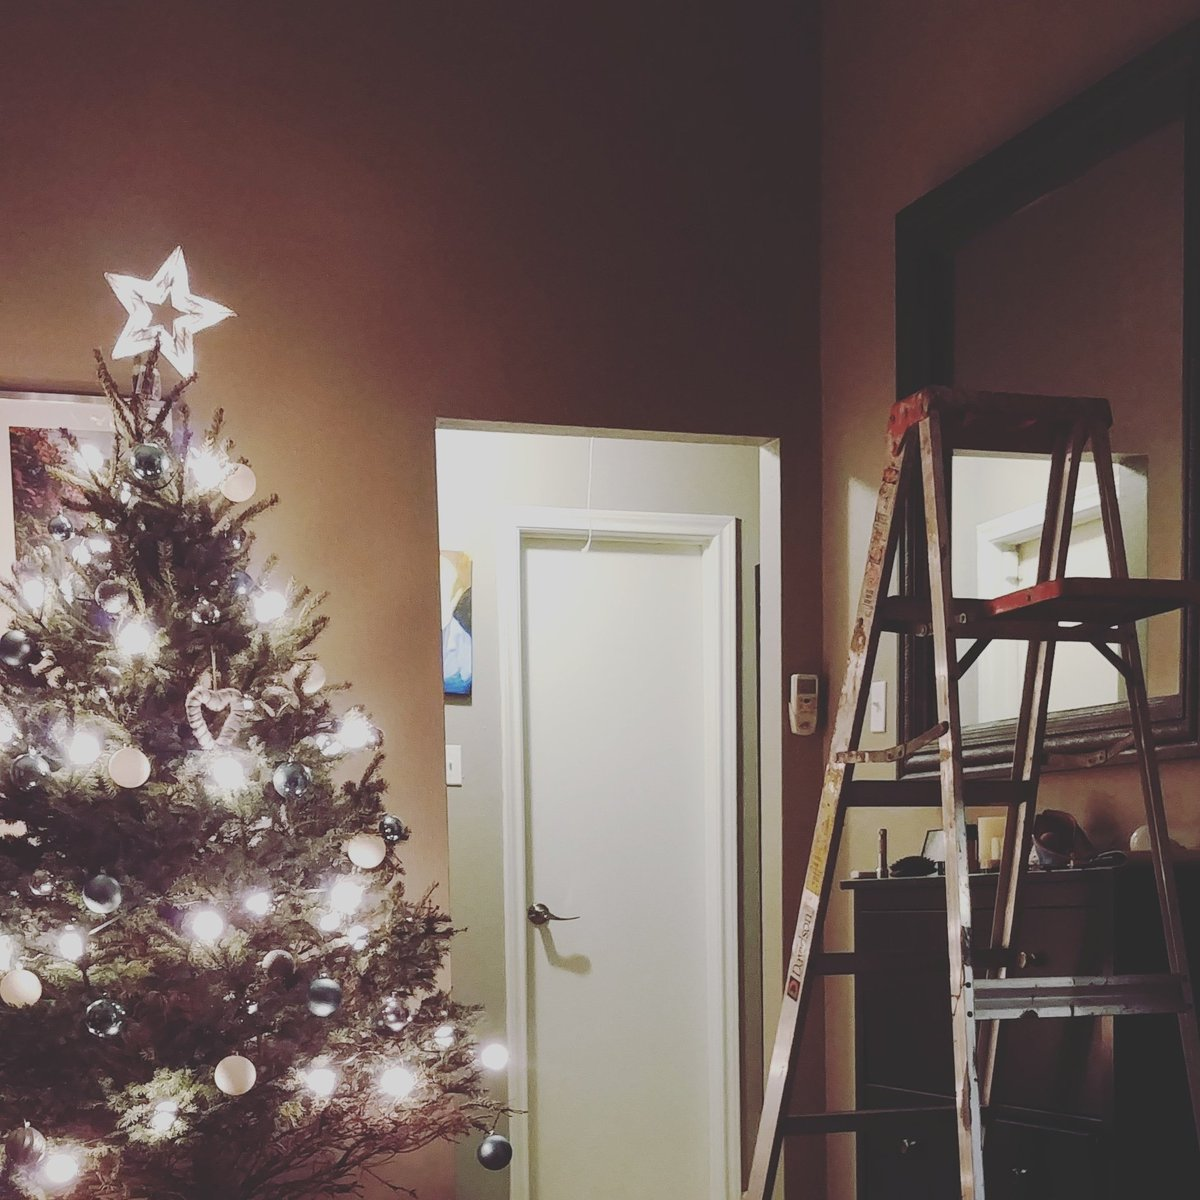 Can't stream at 6:30 CST today, I have to work on some house stuff , if I don't fall off that ladder, I may stream later. #adulting #SupportSmallerStreamers #twitchstreamer #twitch #TuesdayThoughts #TuesdayMotivation #Houstongamers #workhard #ladderworkout <br>http://pic.twitter.com/SyOuW3T5SL